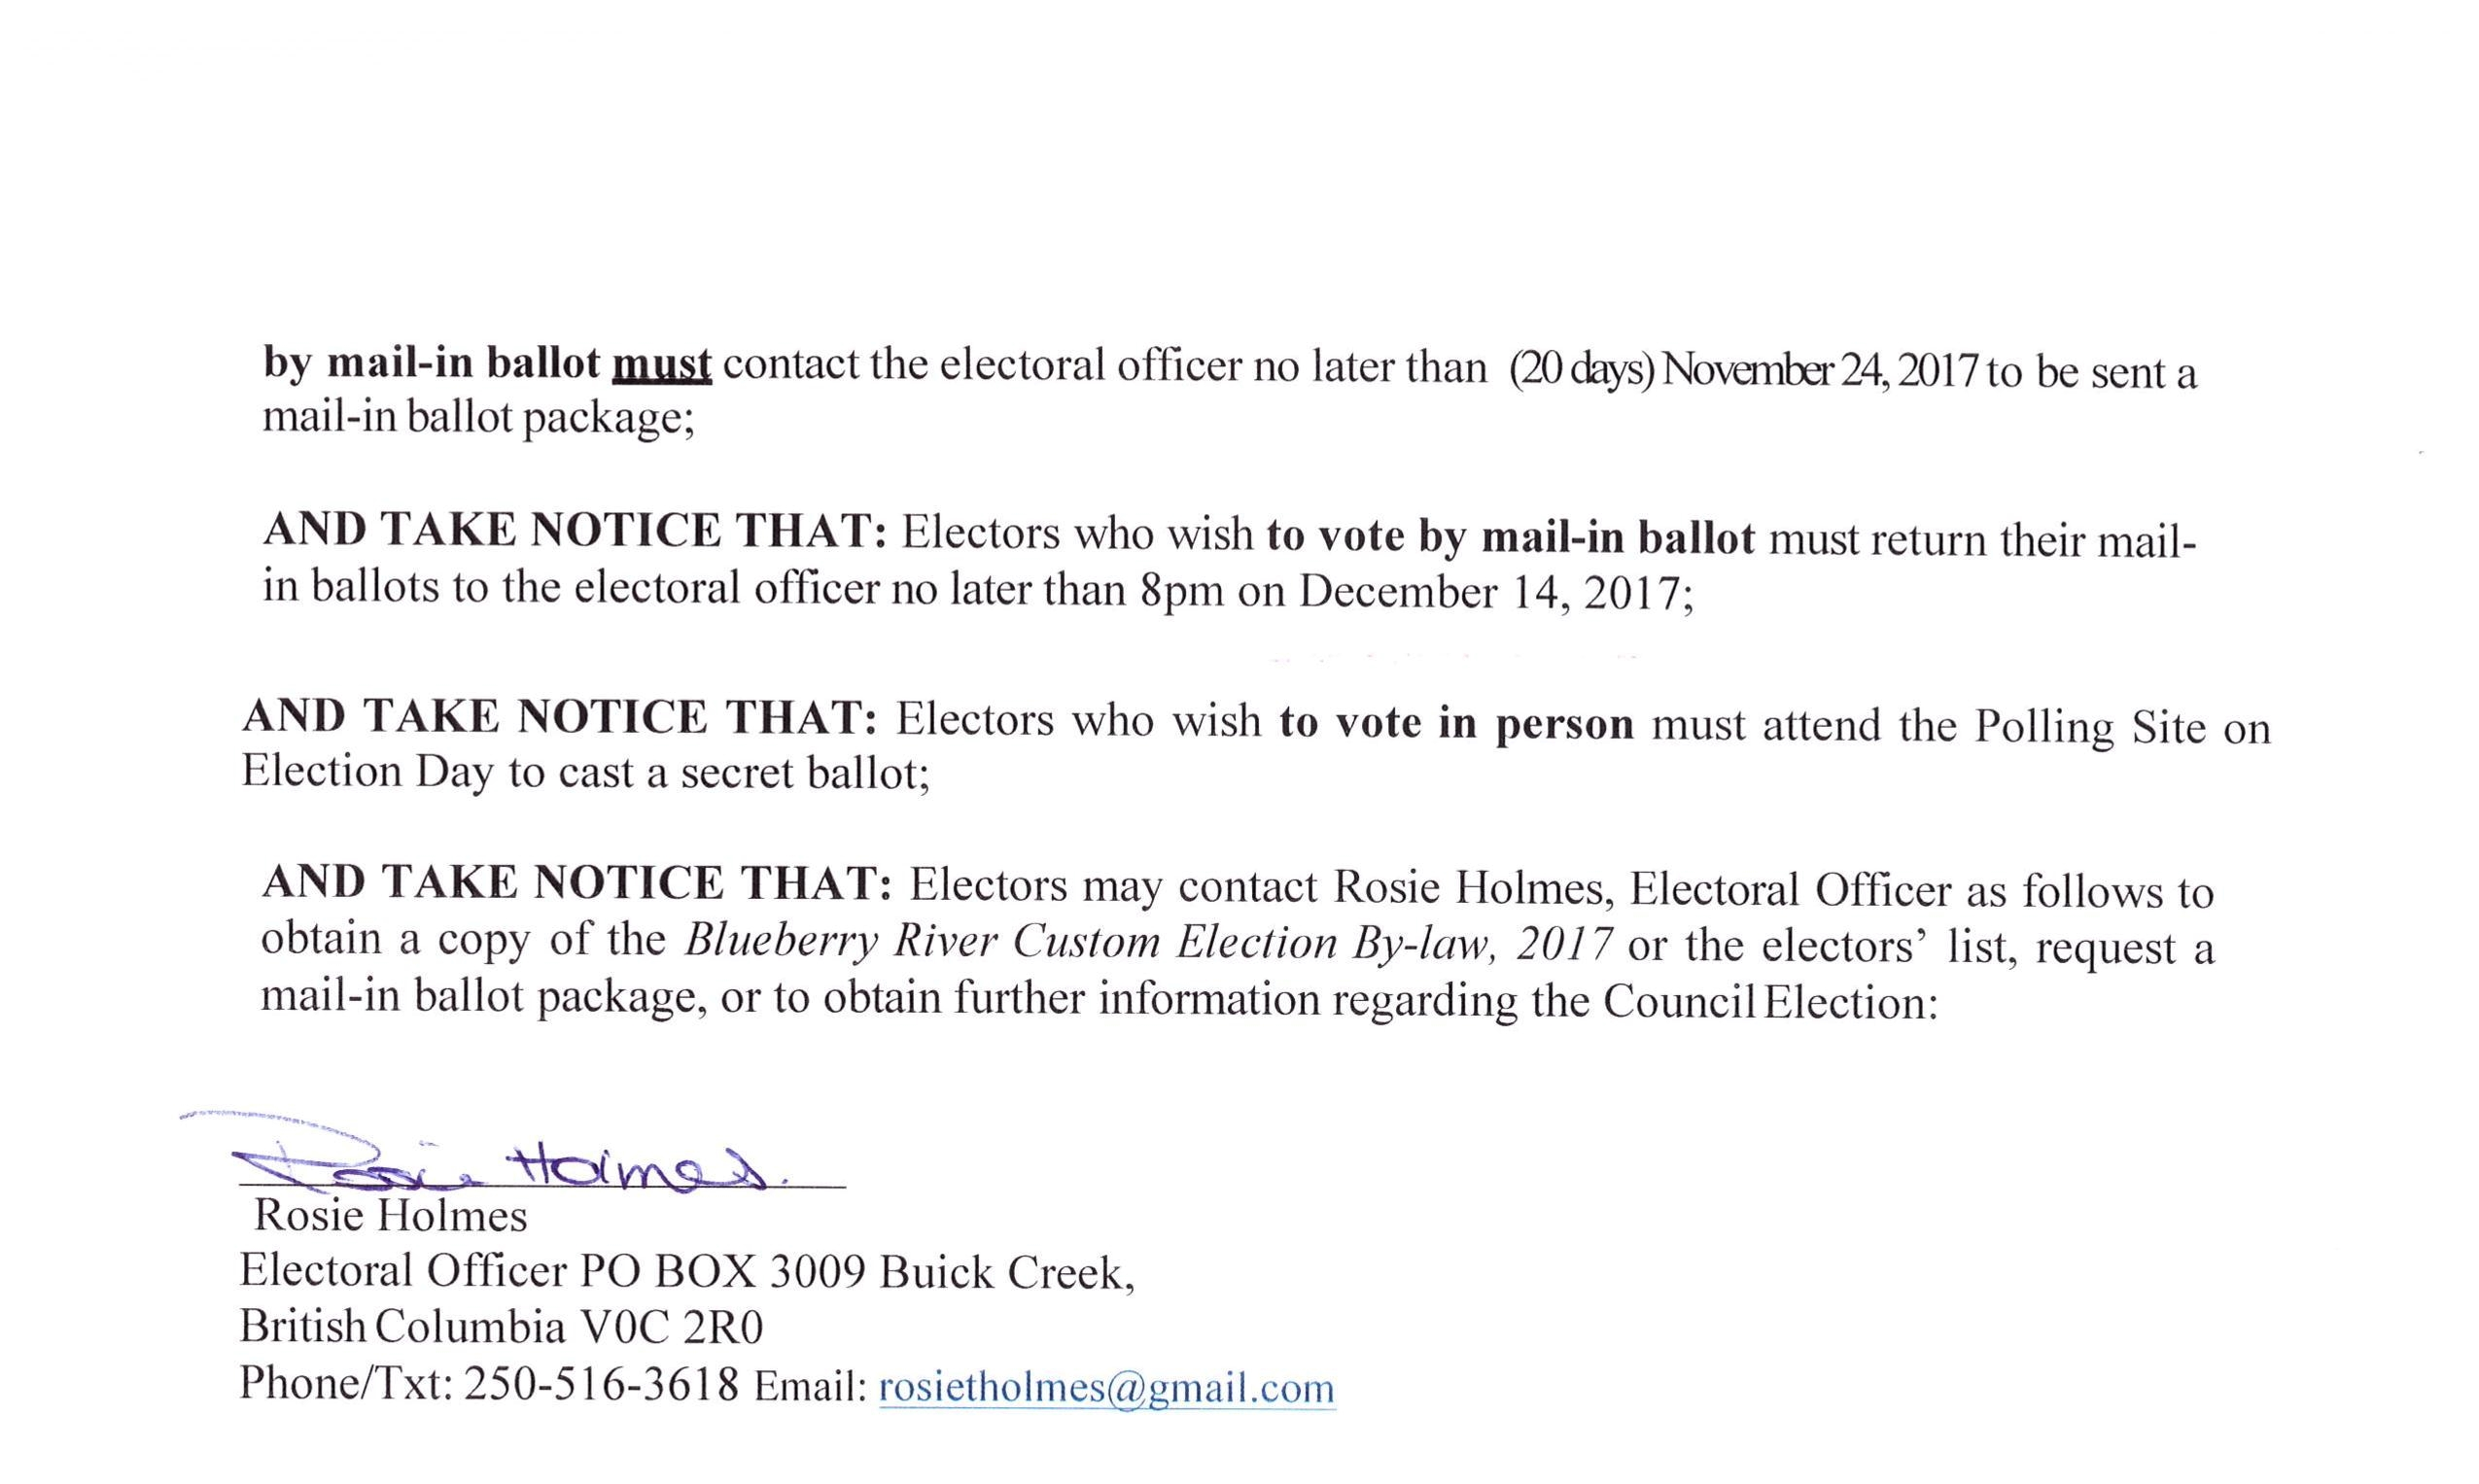 brfn-notice-of-election-pg-2-of-2-page-001.jpg